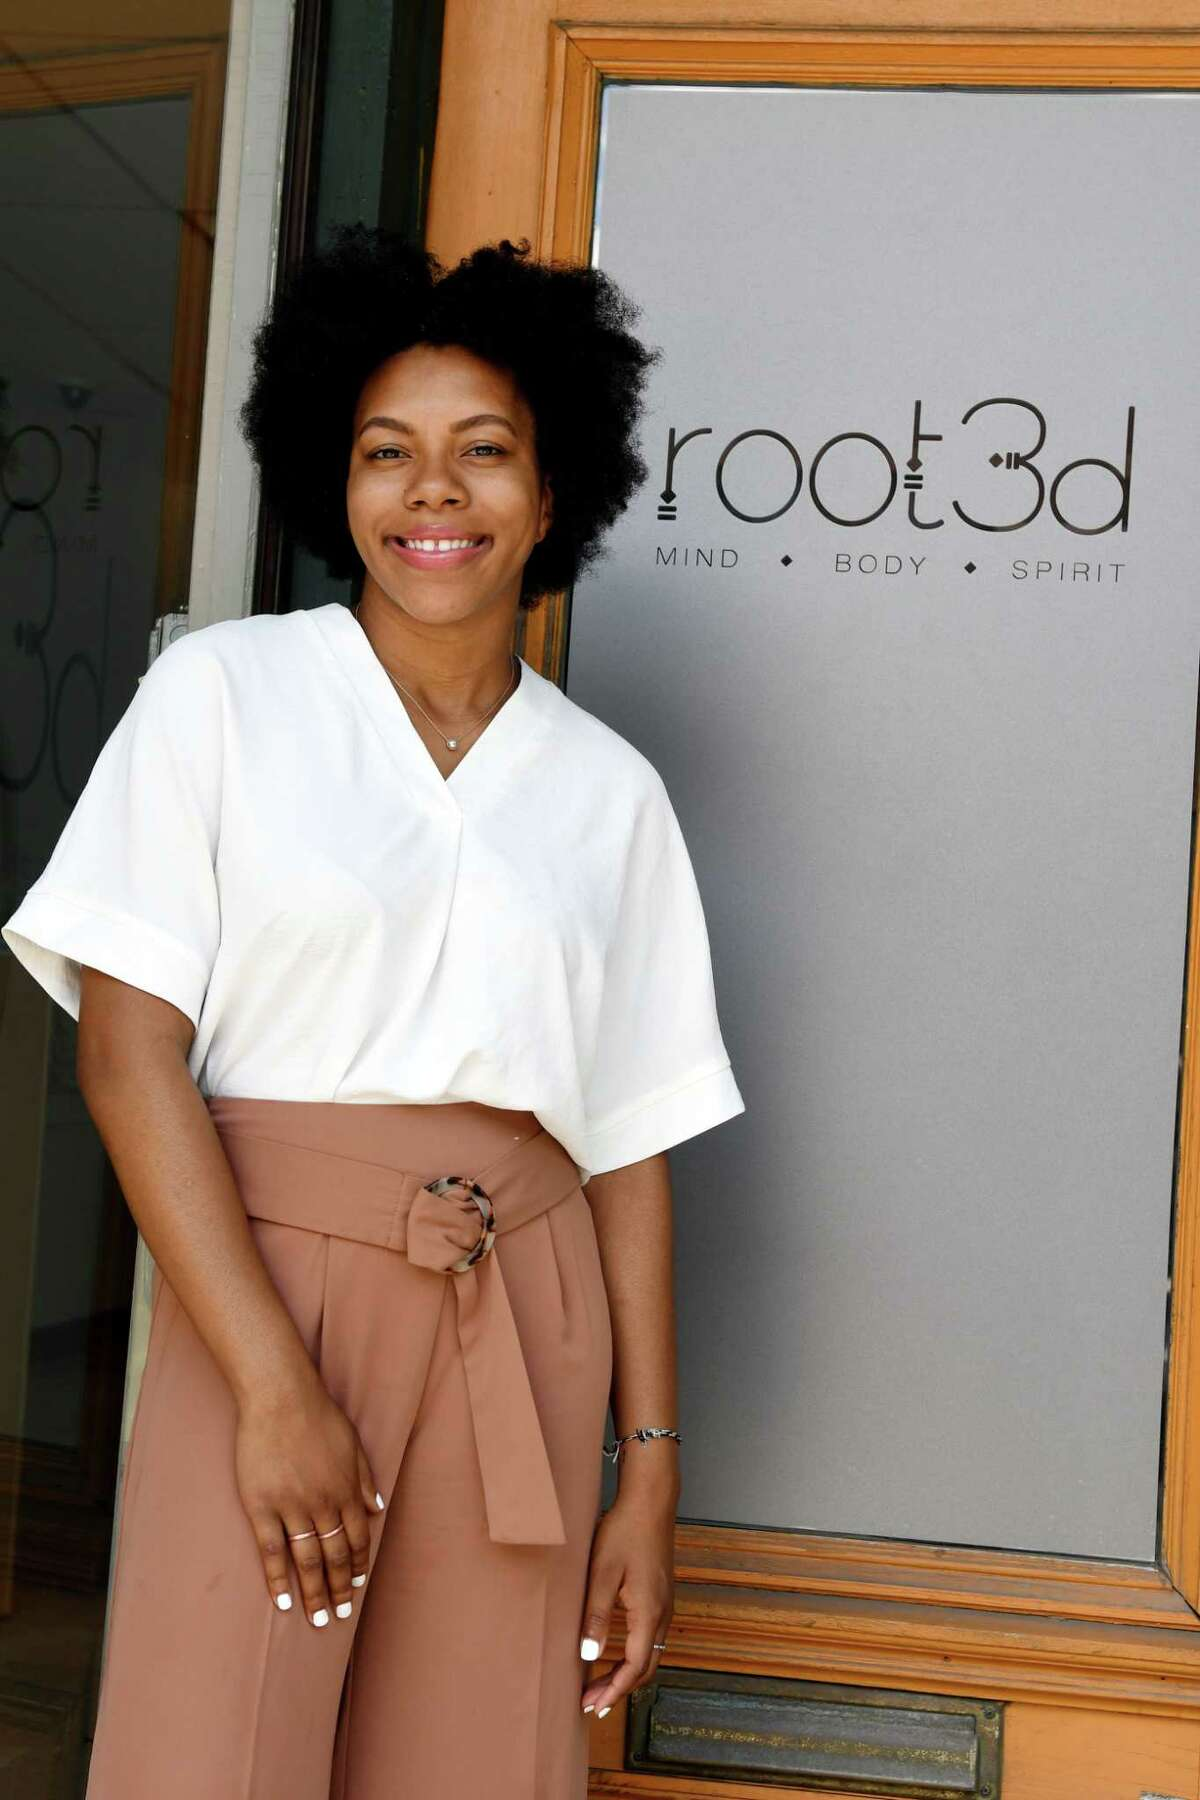 Ashley Whiteside, 23, is a young woman up and coming in her social work career, poses for a portrait at Root3d, a yoga/wellness studio, where she conducts group therapy sessions on Monday, July 12, 2019, in Albany, N.Y. (Catherine Rafferty/Times Union)